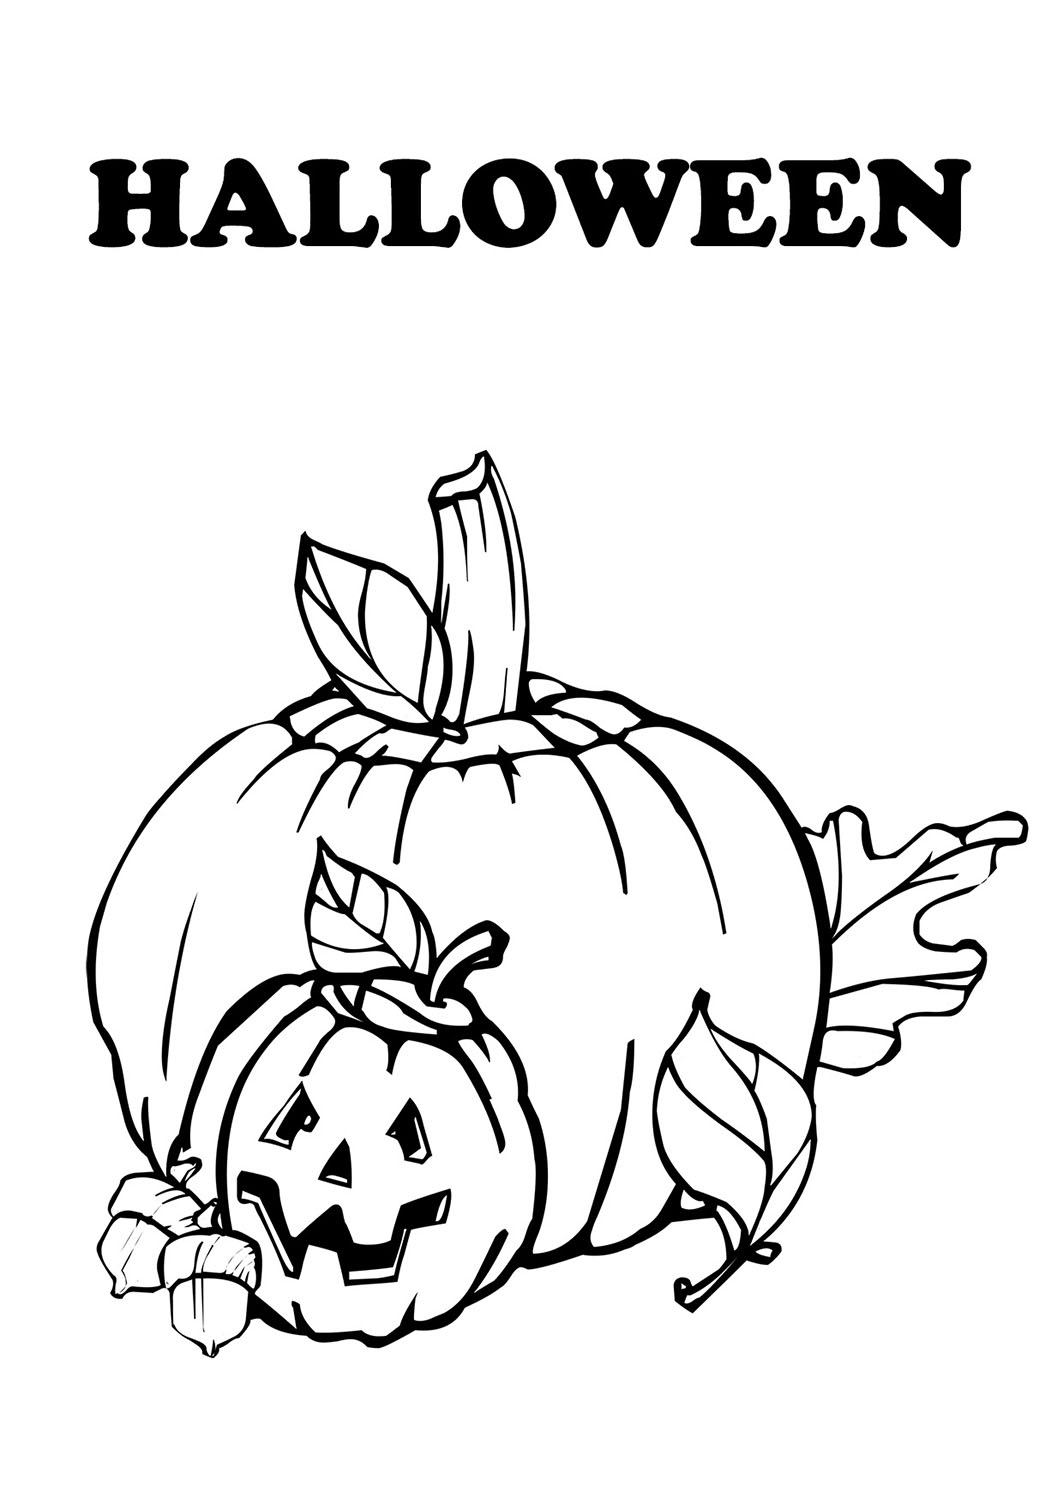 coloring pictures for halloween october 2013 team colors coloring for pictures halloween